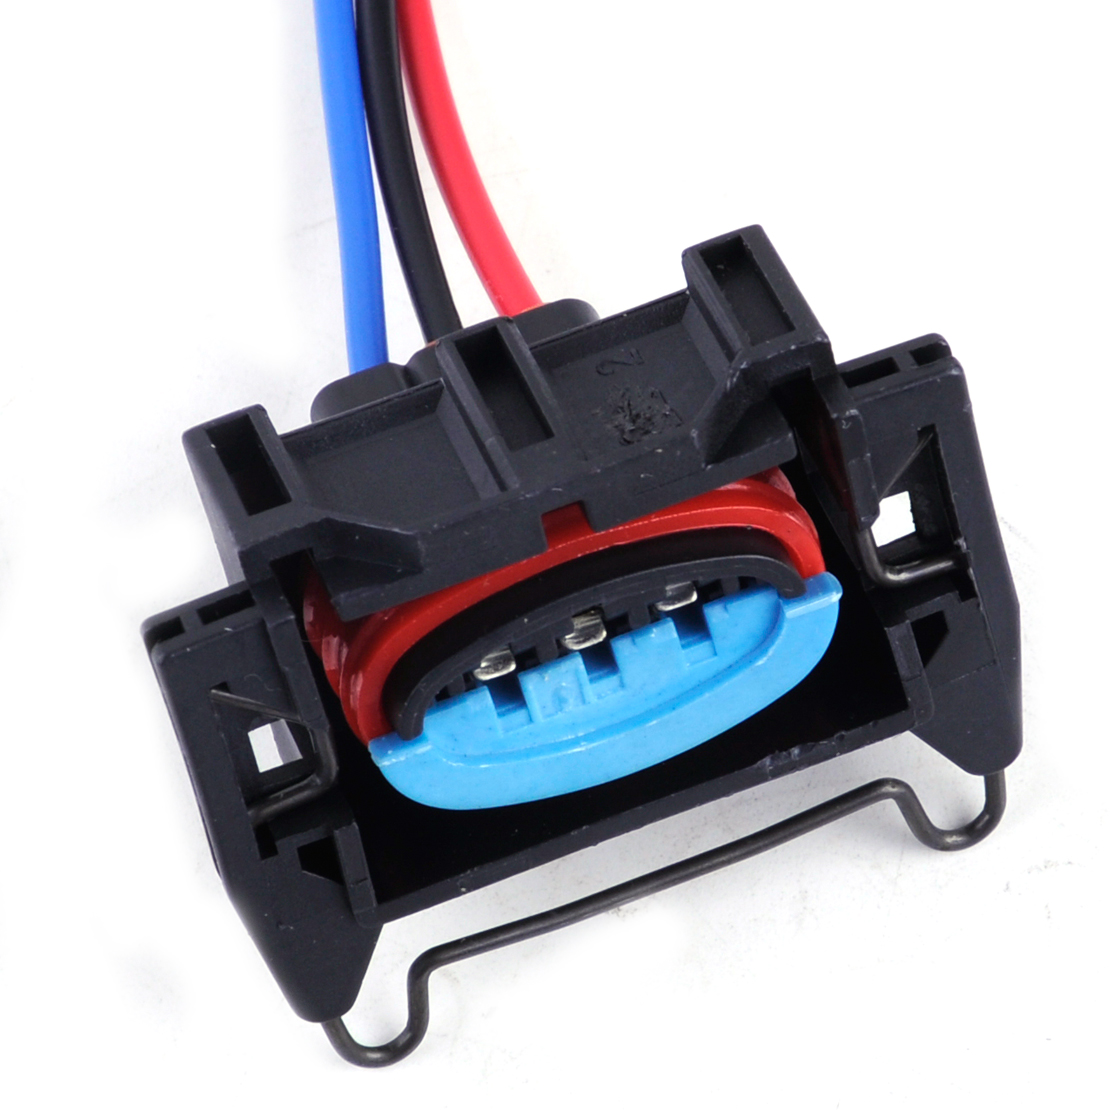 small resolution of citall new ignition coil pack wiring harness connector 645 302 3u2z14s411tna 1p1727 57 5508 for ford focus ranger contour mazda in ignition coil from